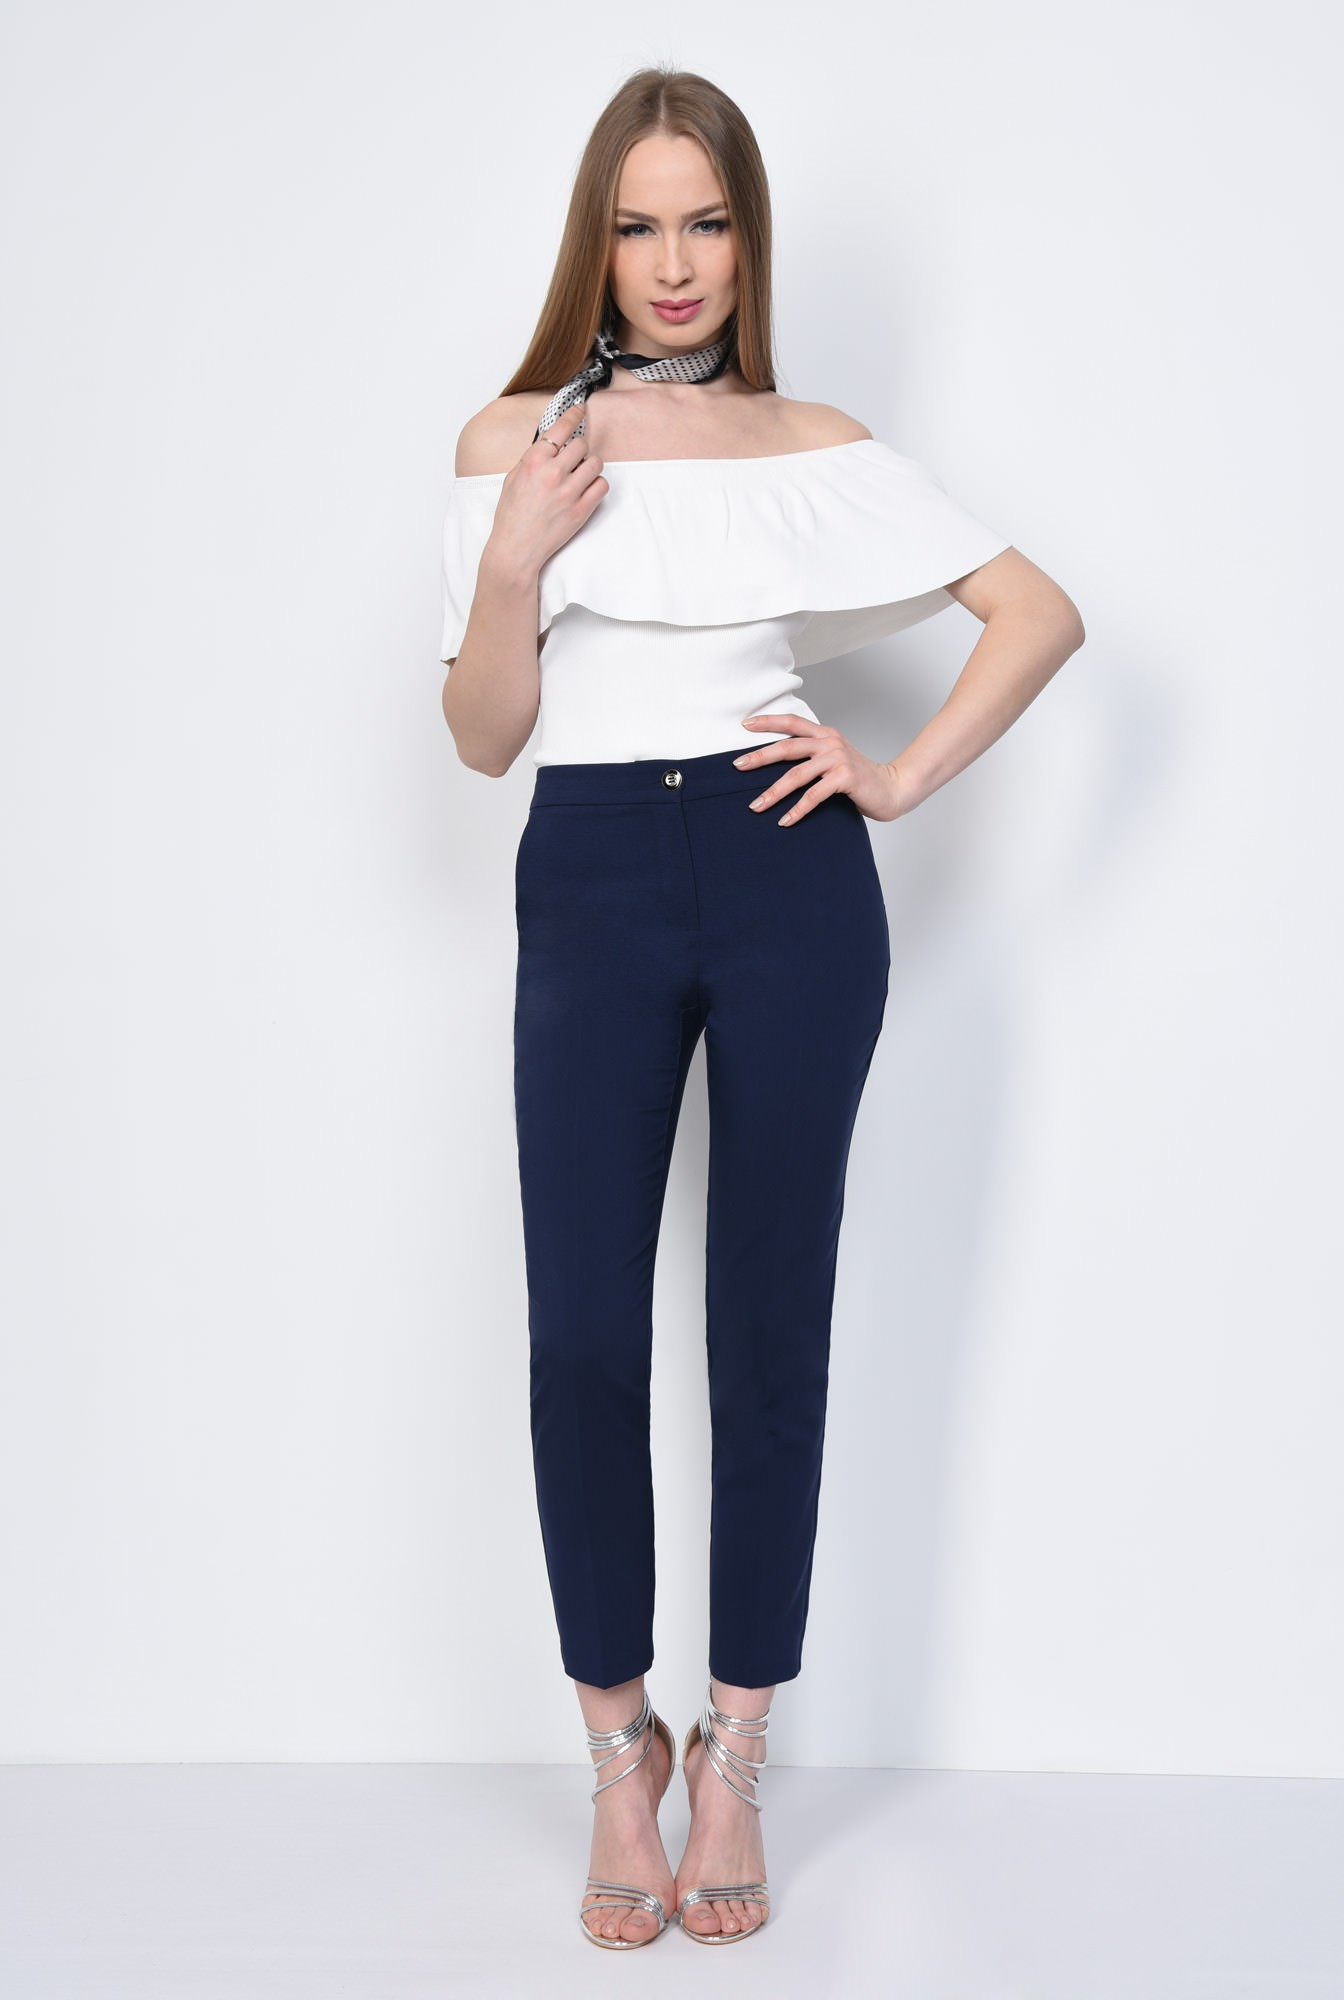 3 - PANTALON OFFICE CONIC PT 138-BLEUMARIN